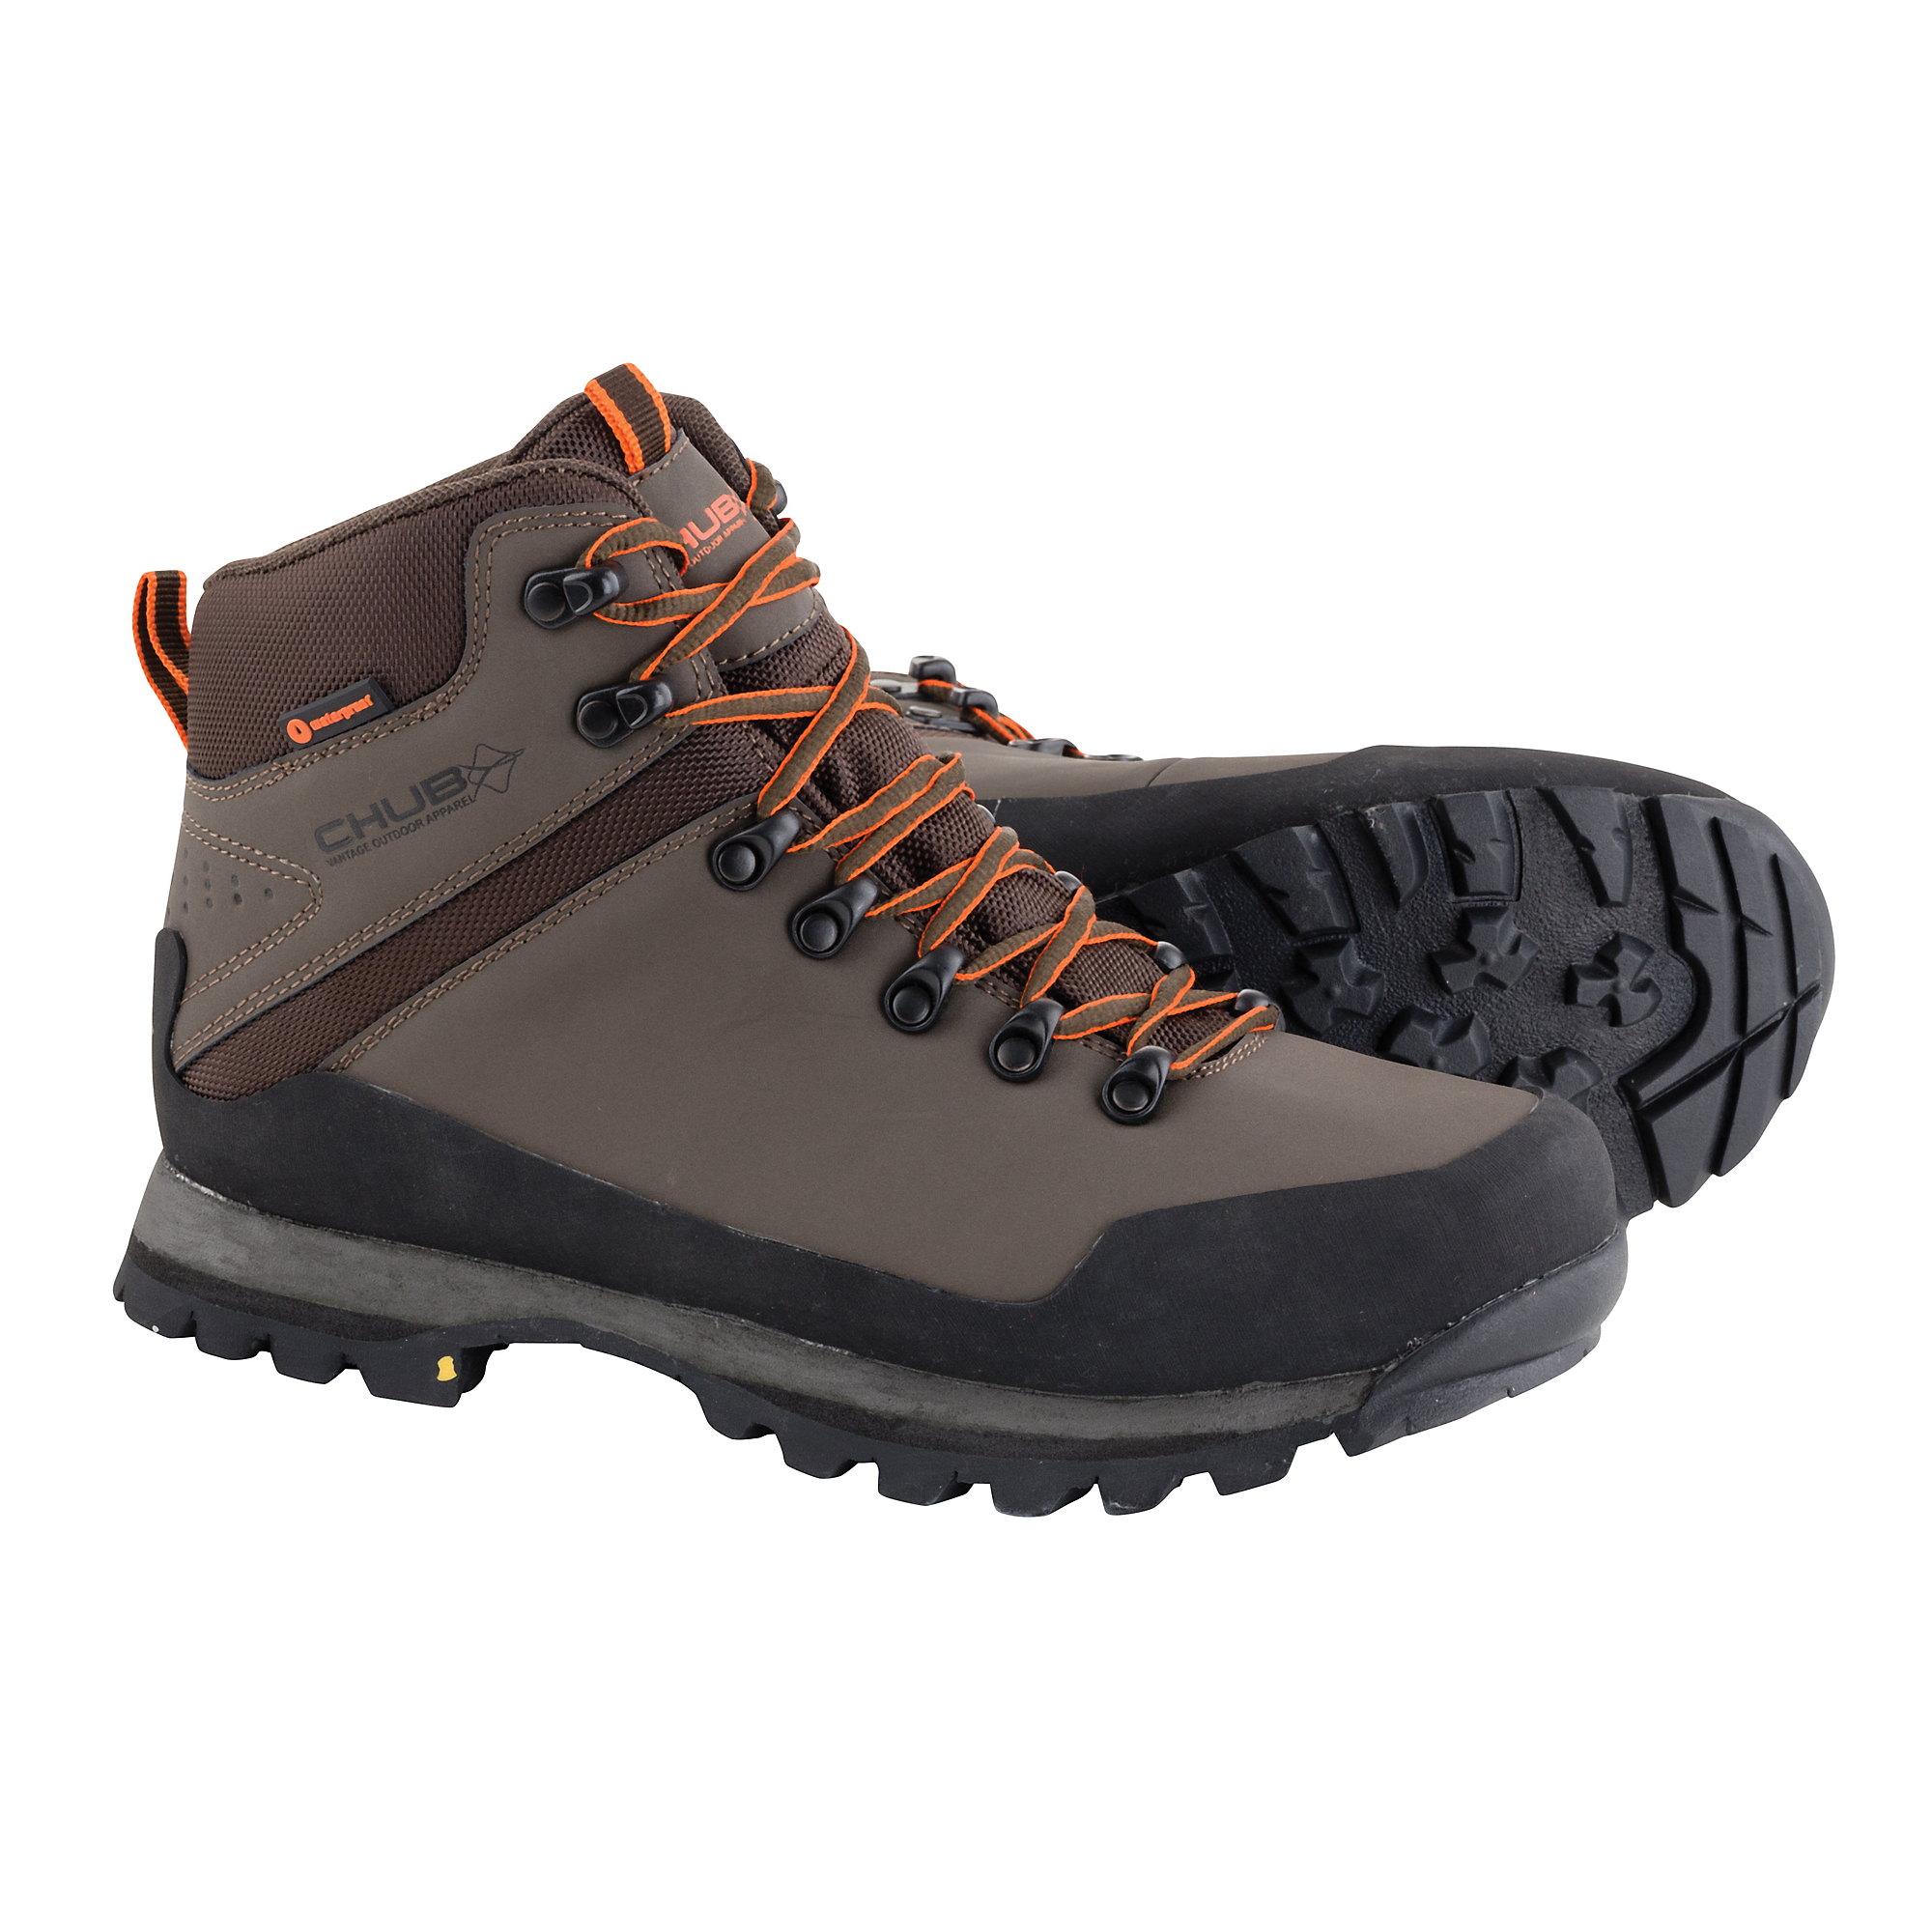 32327fdfbbdfb Chub Vantage Field Boots – Glasgow Angling Centre